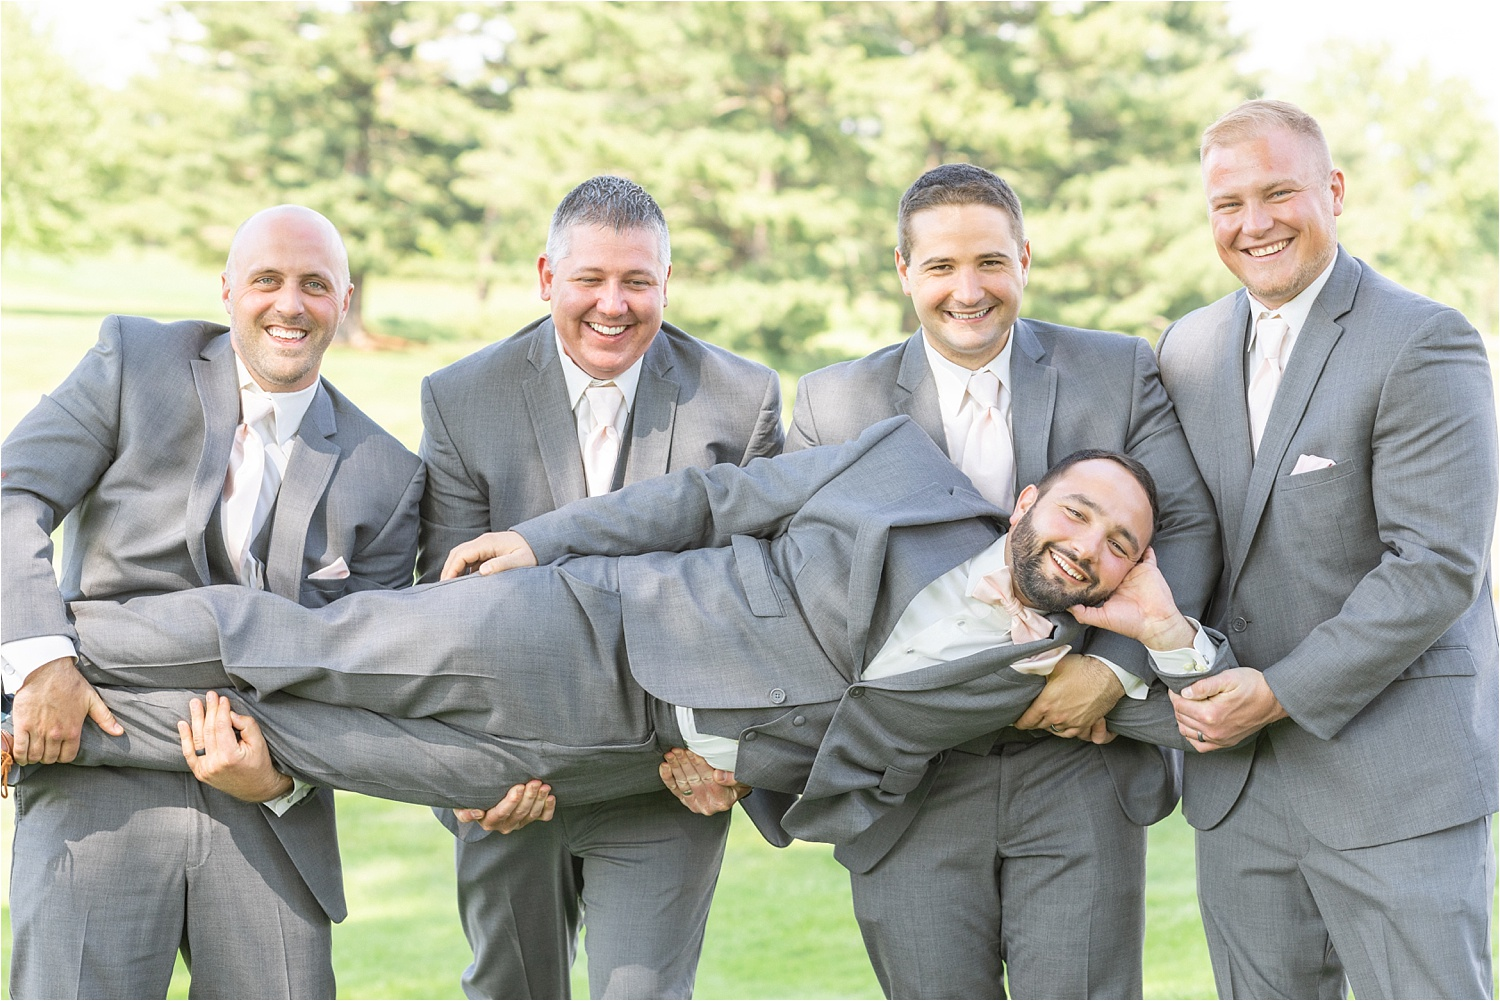 groomsmen photos at tippecanoe country club in canfield